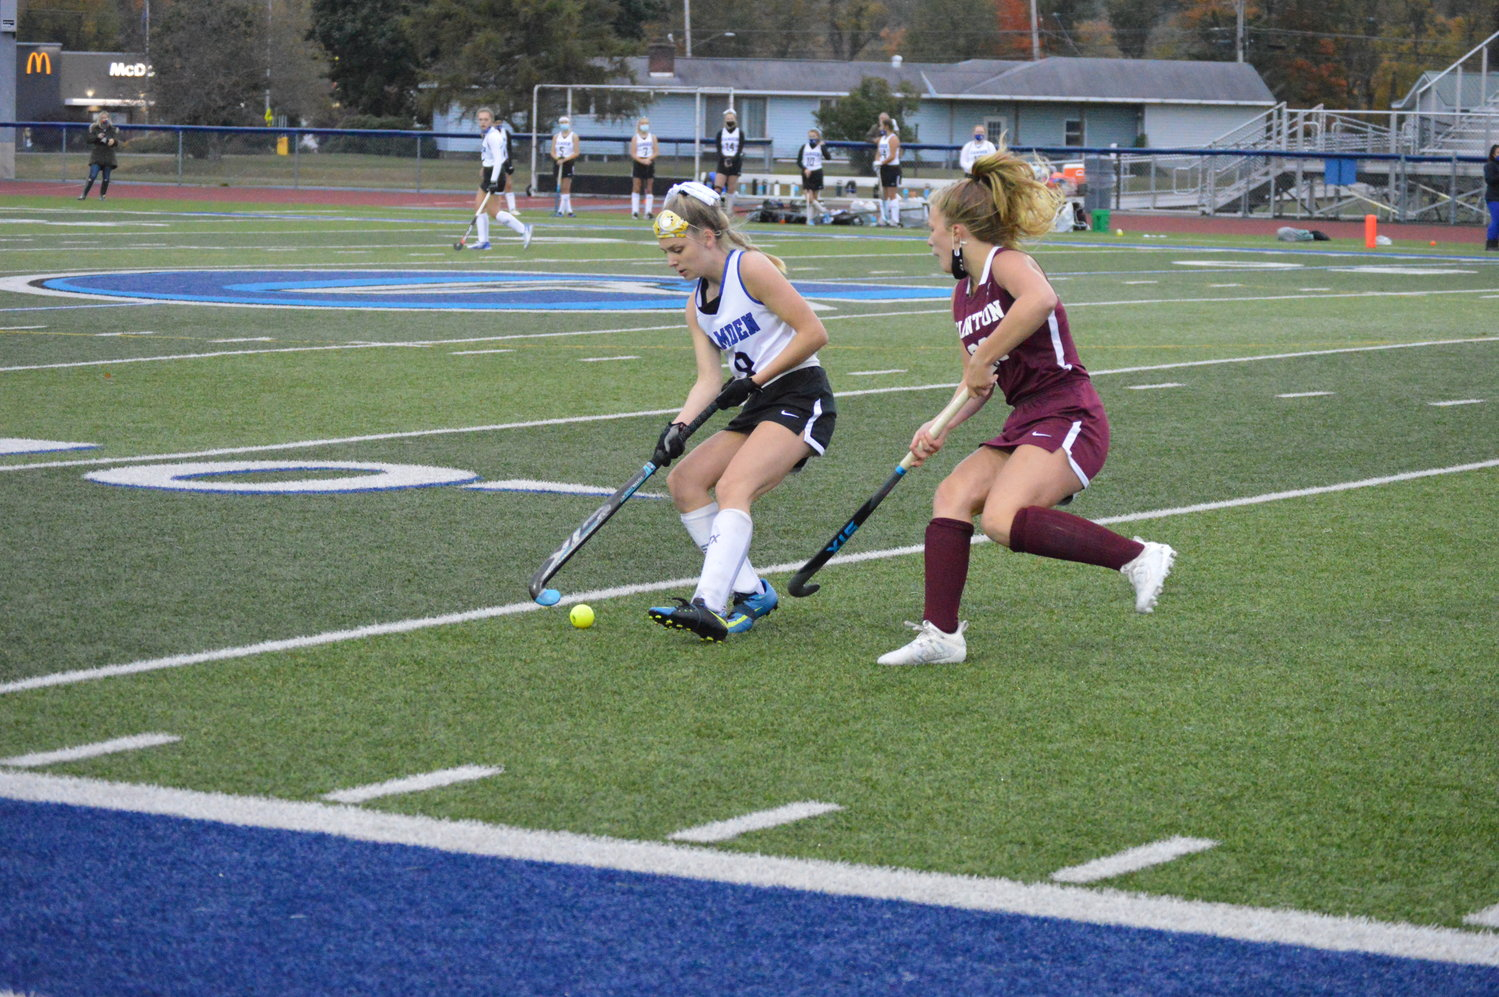 MAKING A MOVE — Camden's Emily Walker, left, makes a move against Clinton's Finley Davignon during the season-opener on Monday, Oct. 5 in Camden. Clinton scored less than 15 seconds into the game, which proved to be the difference as the Warriors defeated the Blue Devils, 1-0.